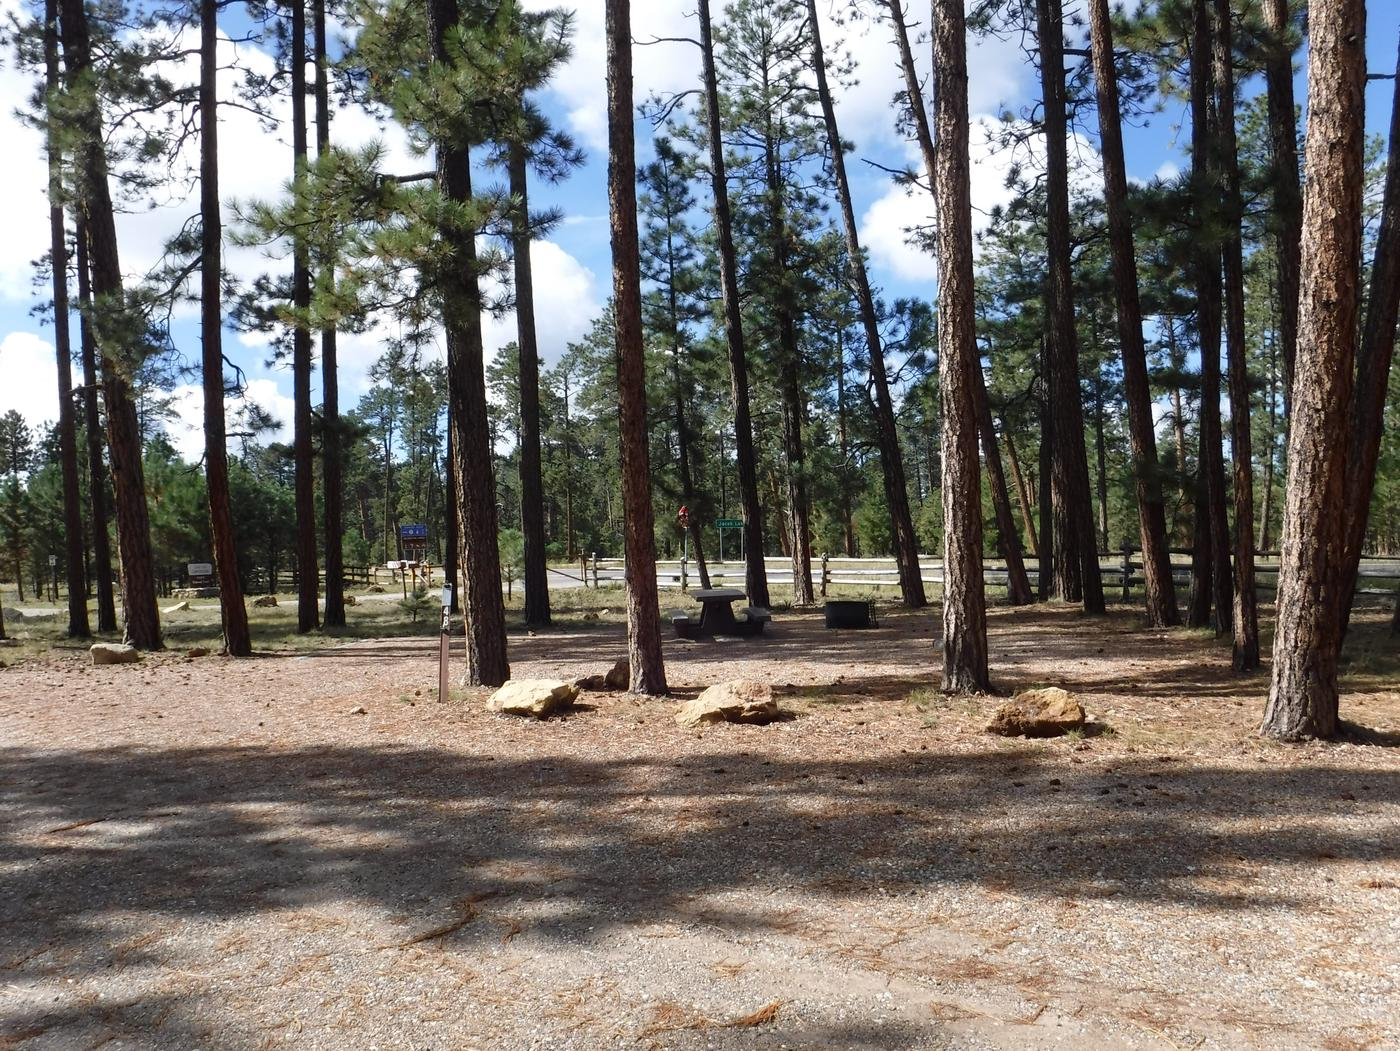 Jacob Lake site #48 featuring entrance, parking, and full camp space view.